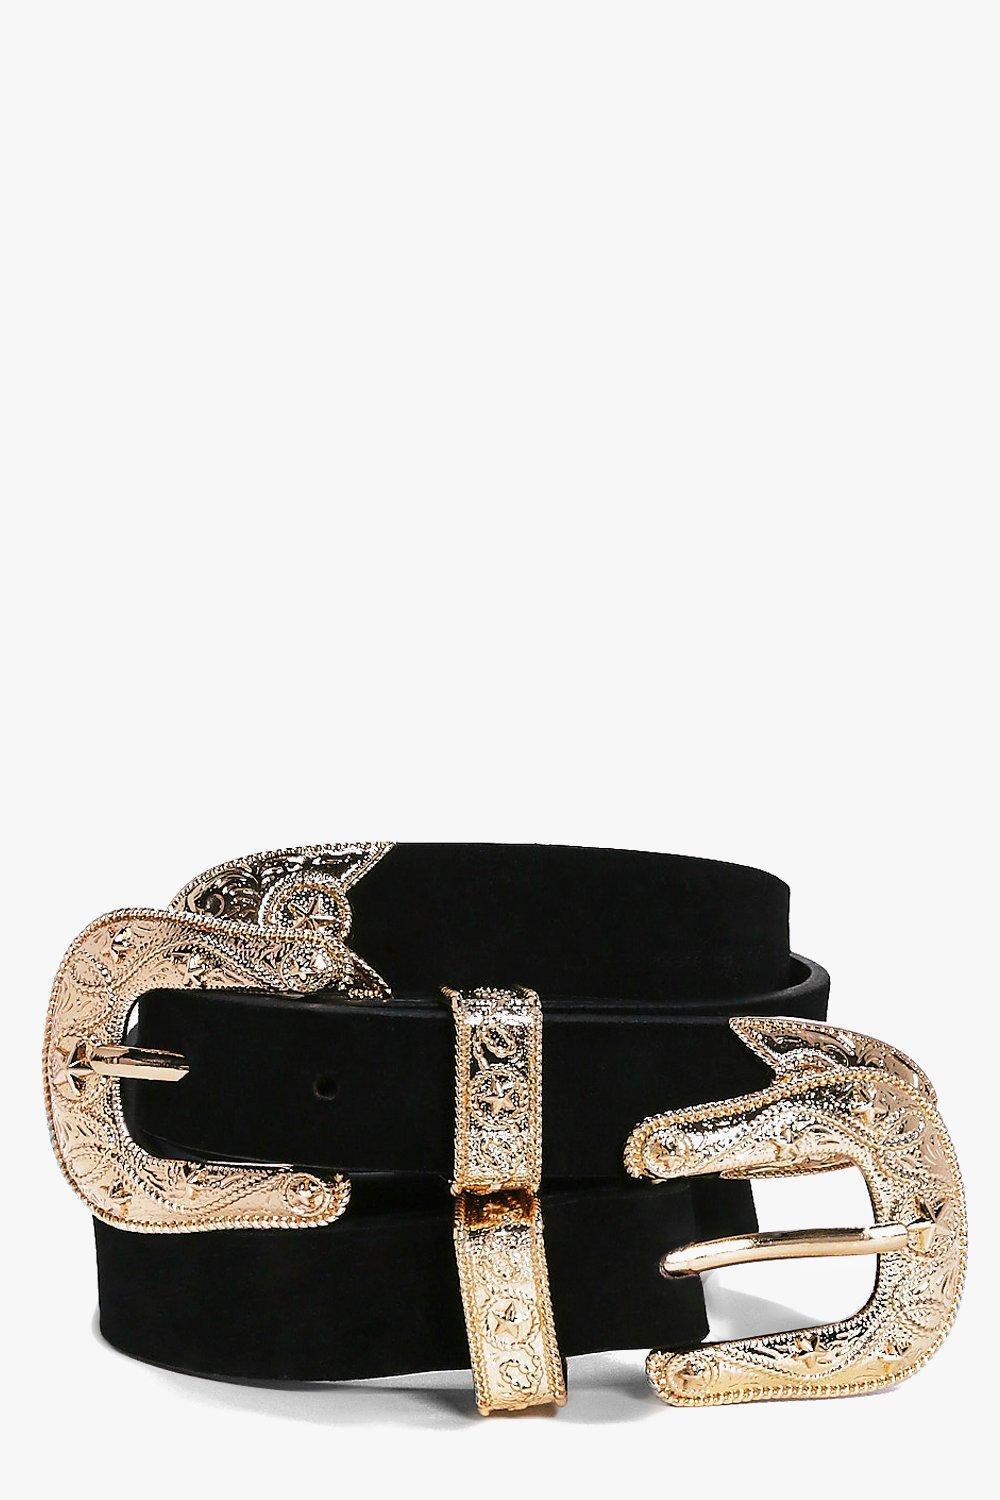 Suedette Double Buckle Star Western Belt - black -